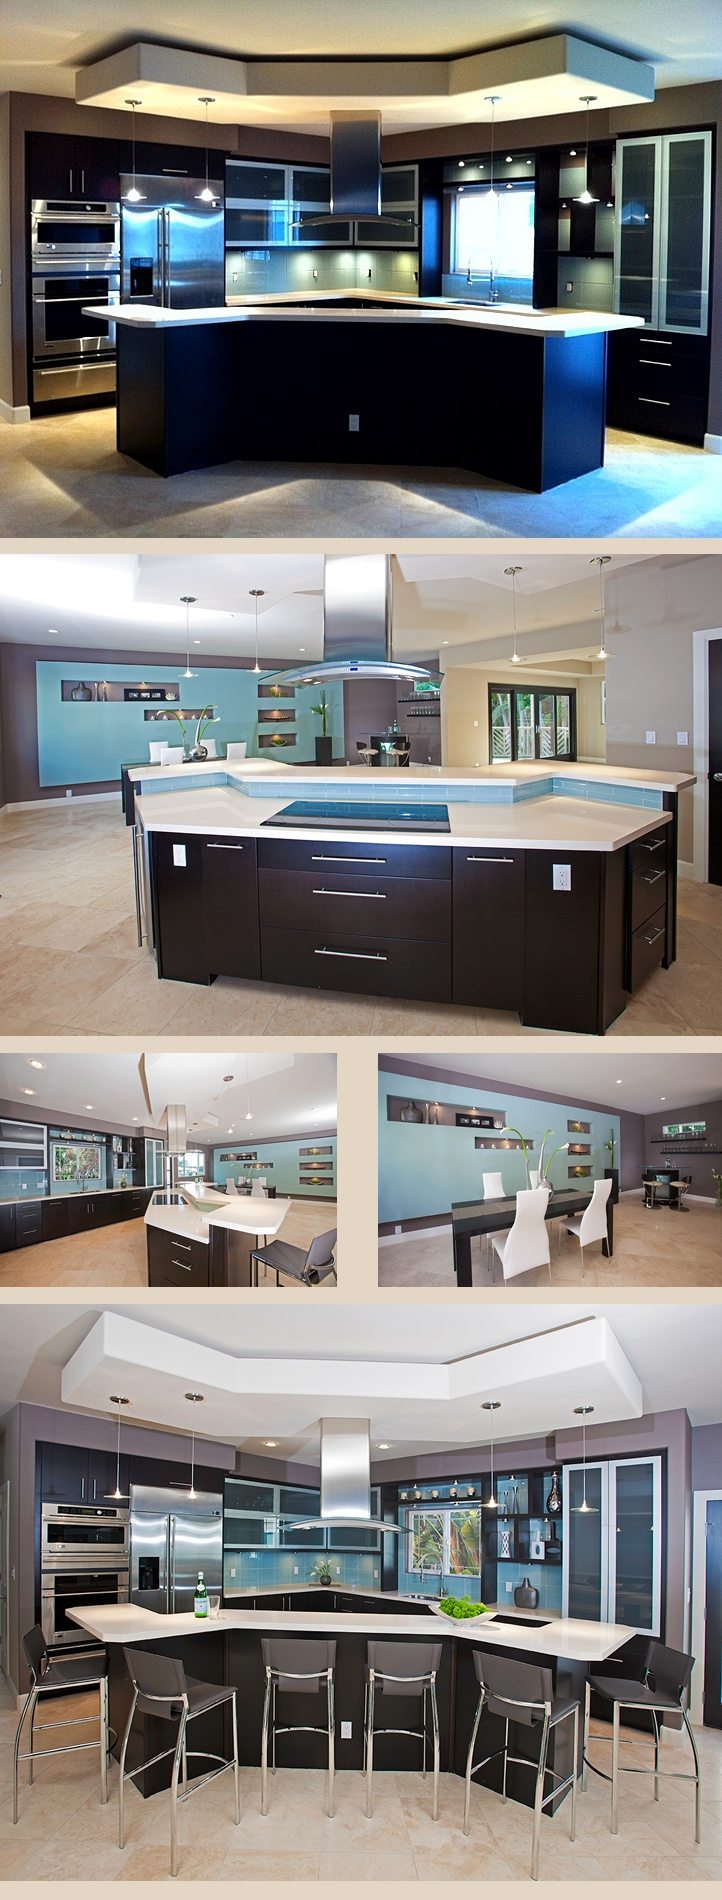 Love the blues cool kitchen overall